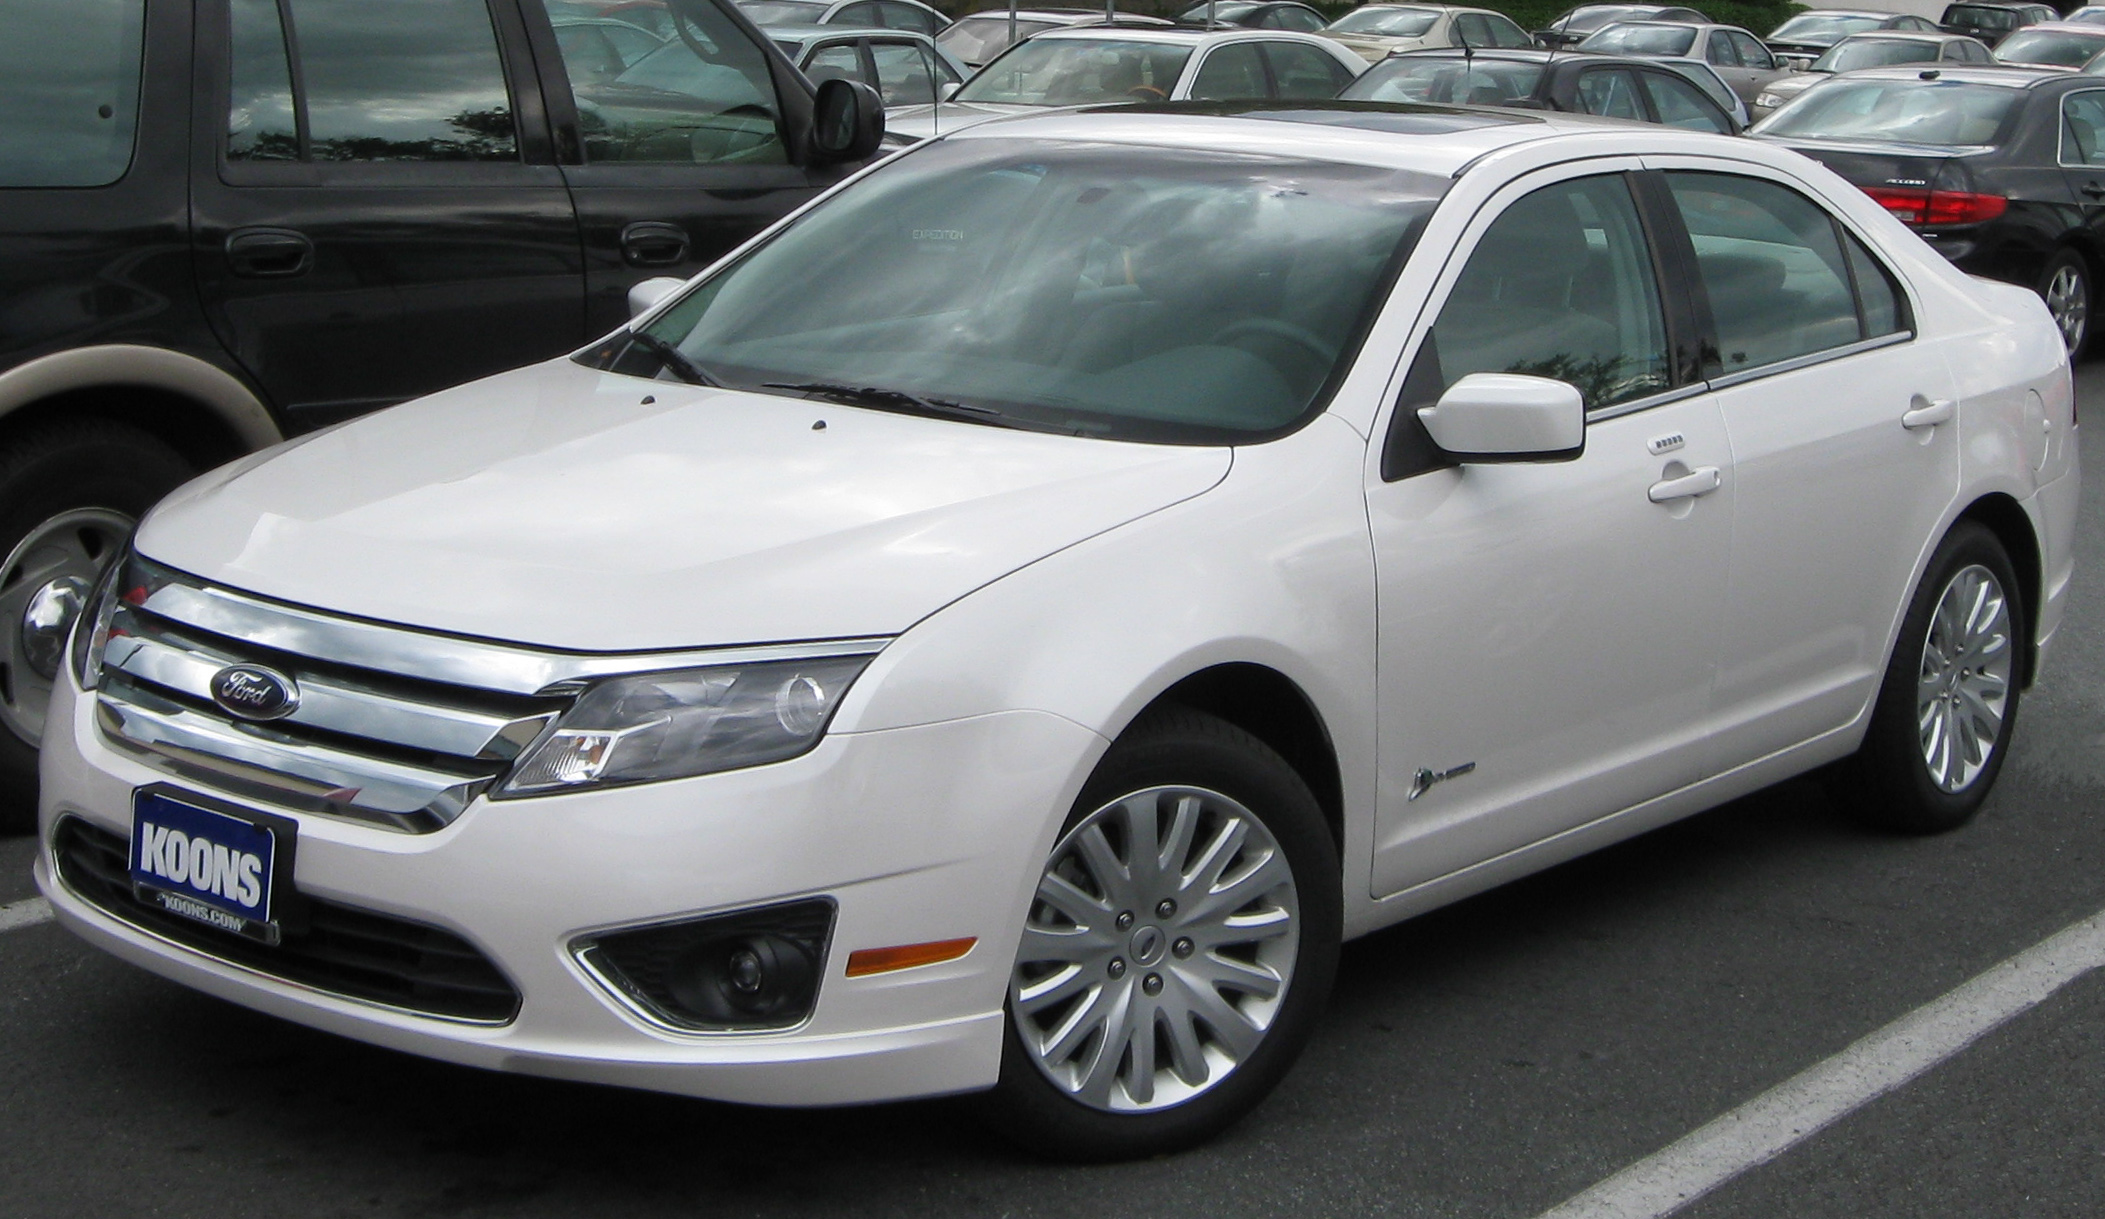 2011 Ford Fusion #13